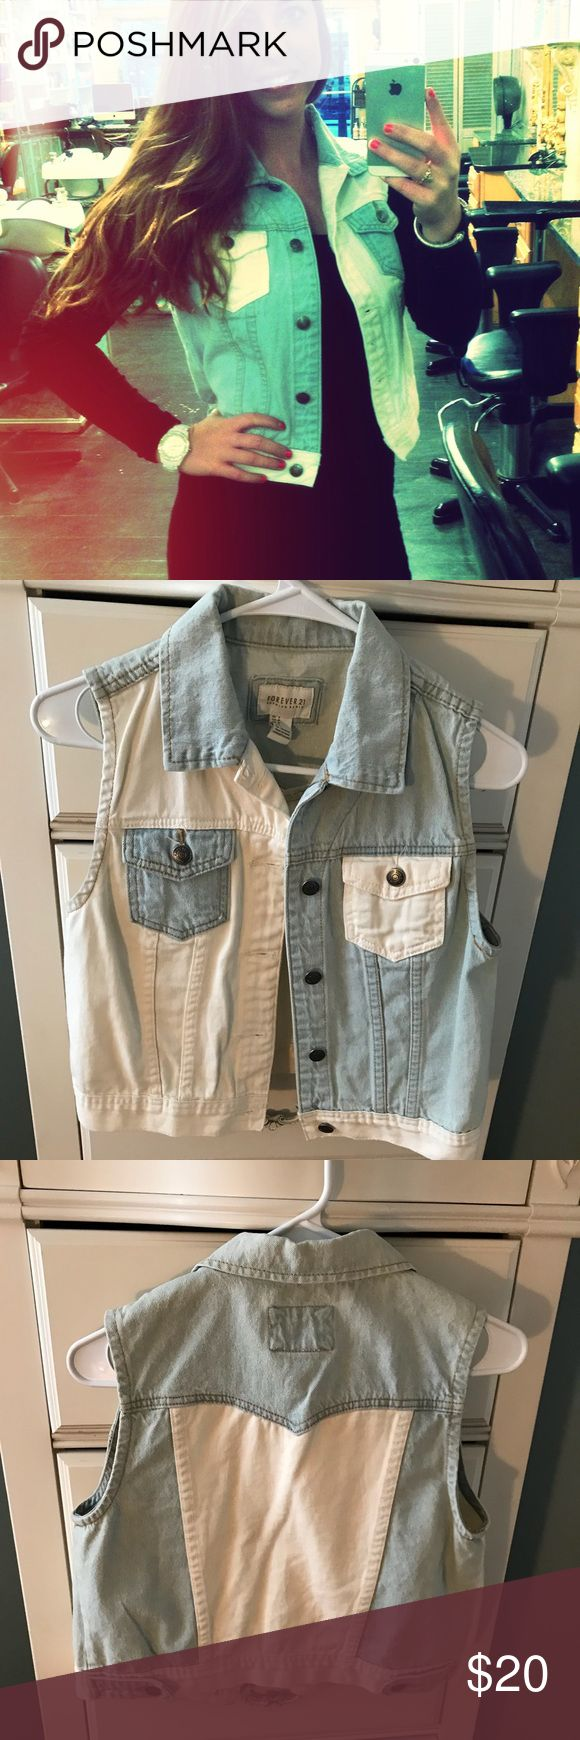 Forever 21 Denim and white jean vest - size S. Forever 21 - denim and white jean vest - size small. No rips, stains or odor! Price negotiable! Forever 21 Tops Tees - Short Sleeve